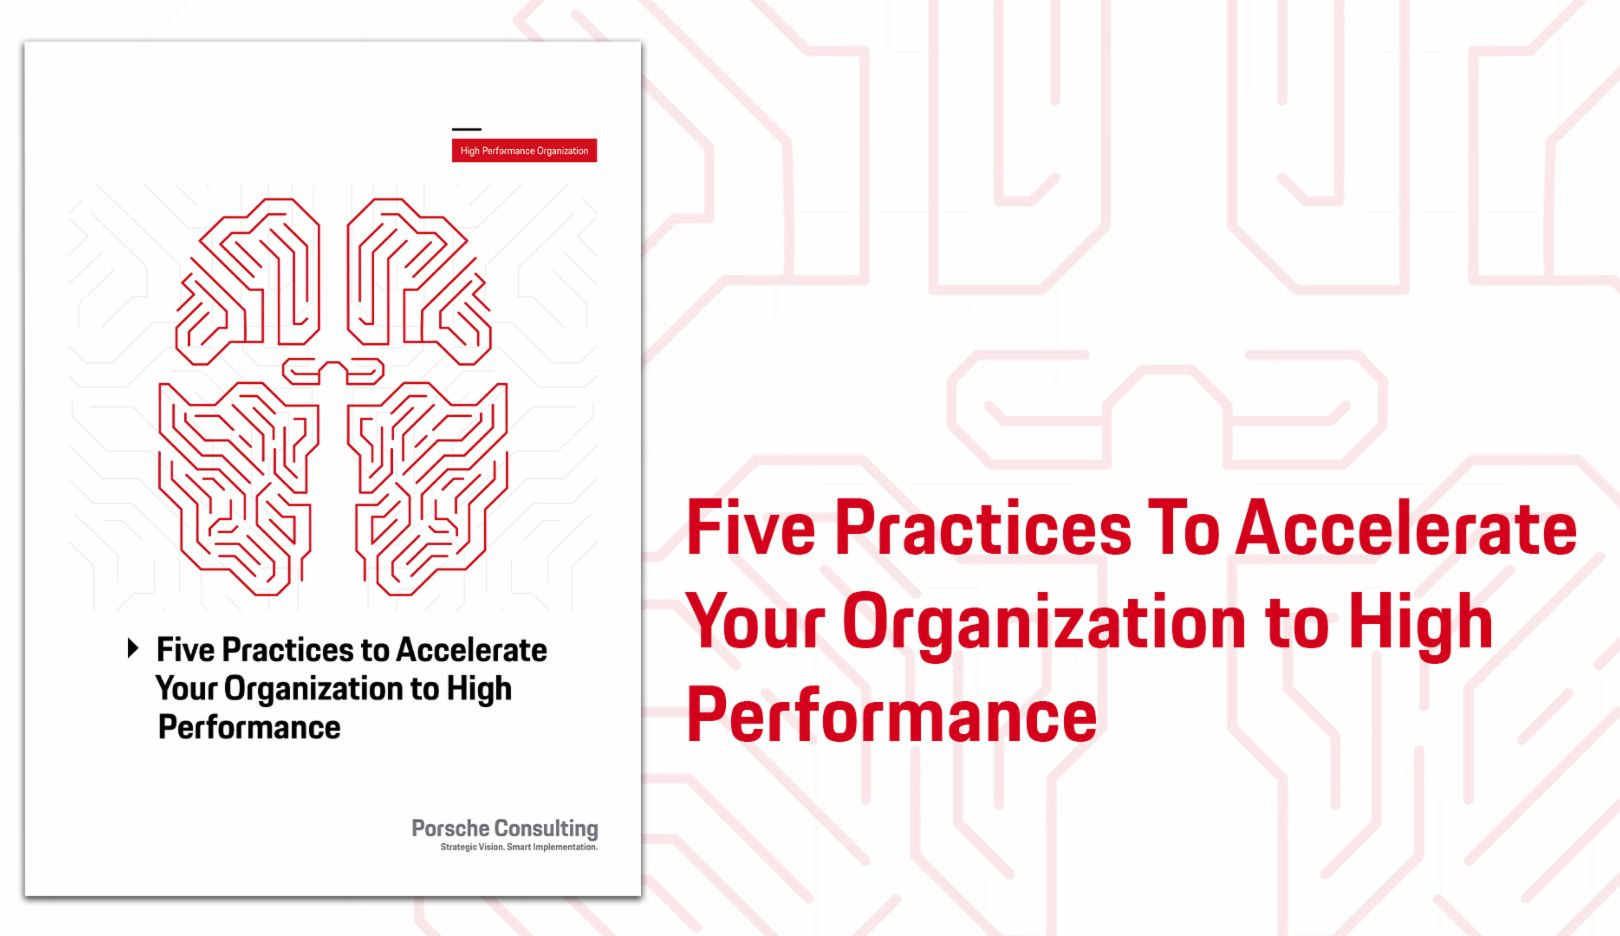 Five Practices to Accelerate Your Organization to High Performance, 2018, Porsche Consulting